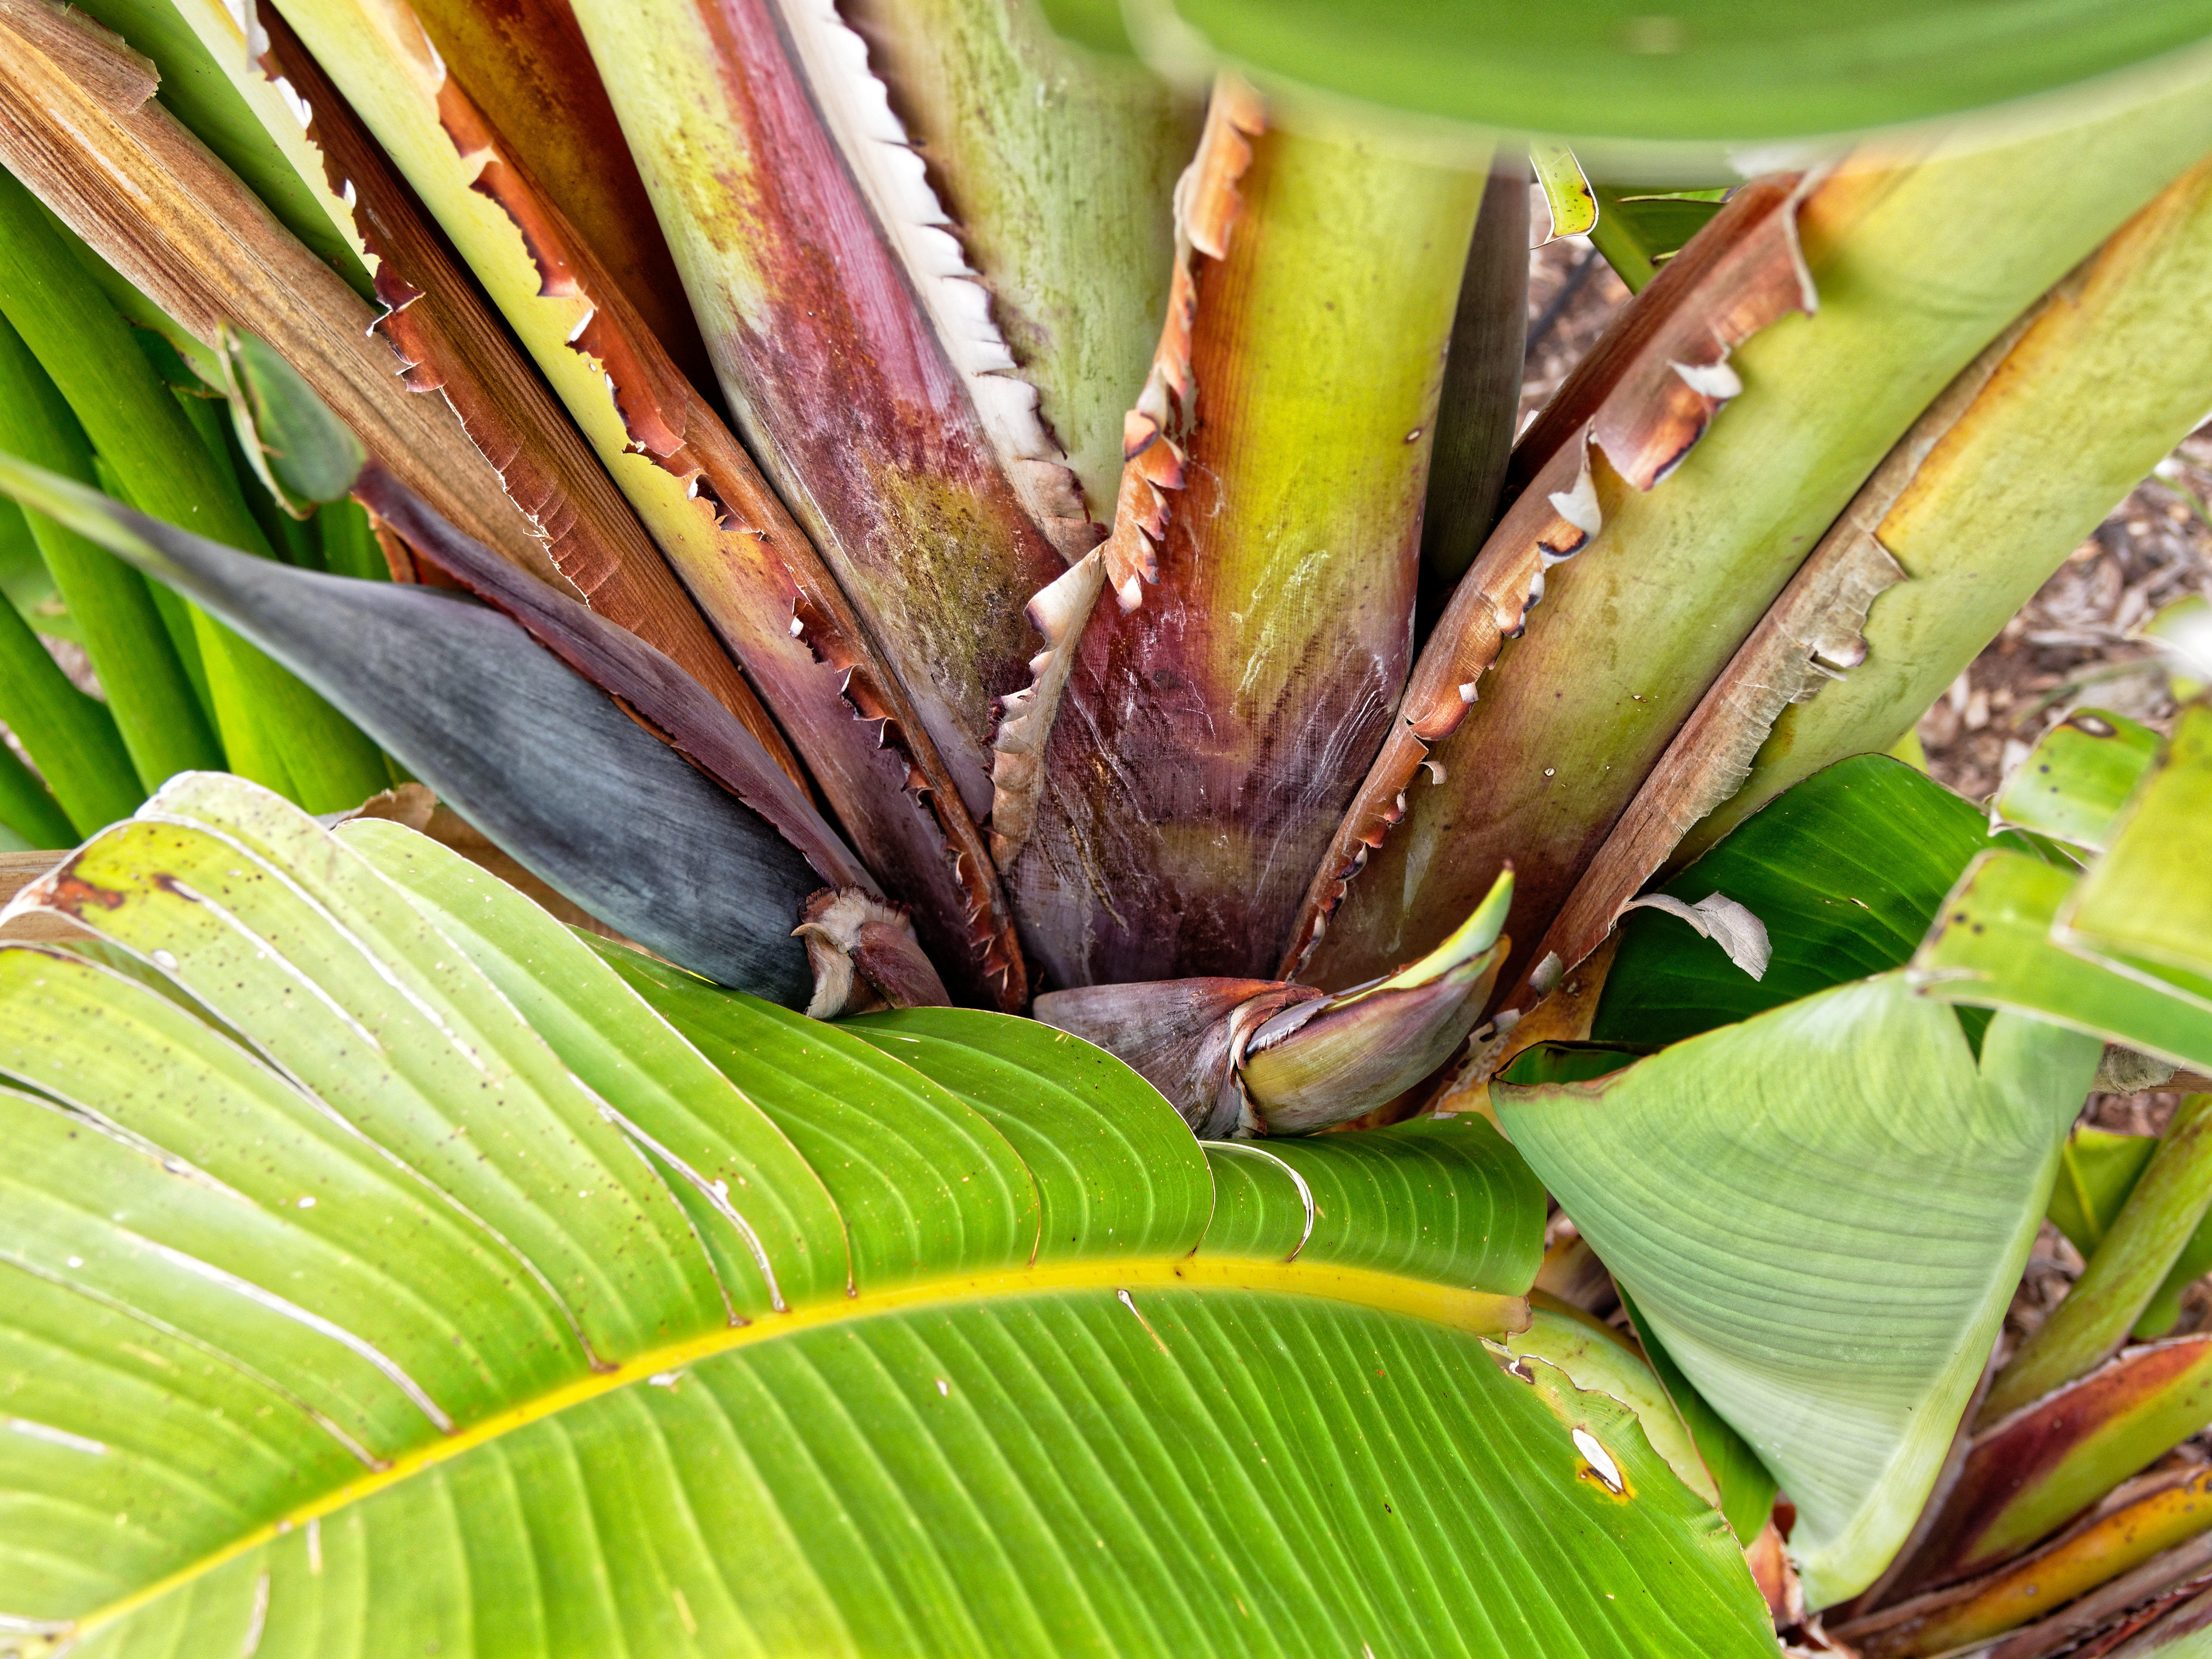 This should be Strelitzia-nicolai-2.jpeg.  Is it missing?